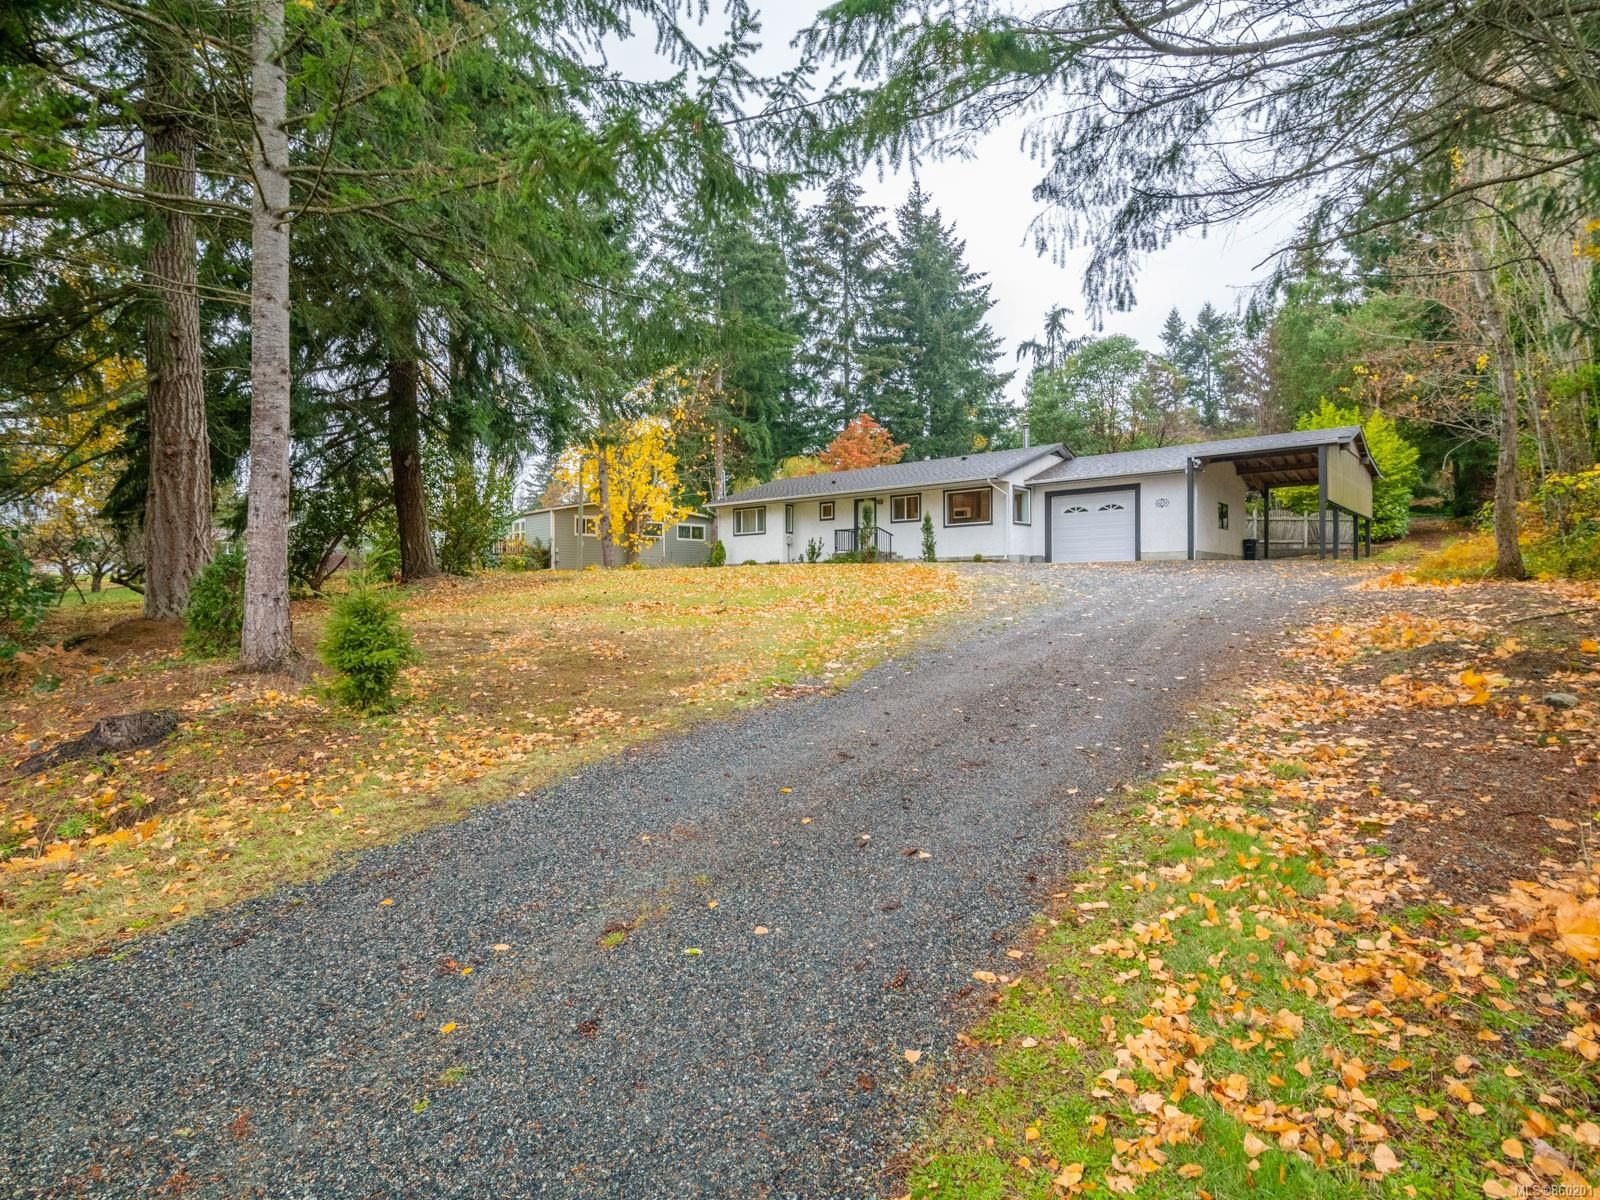 Main Photo: 6630 Valley View Dr in : Na Pleasant Valley House for sale (Nanaimo)  : MLS®# 860201